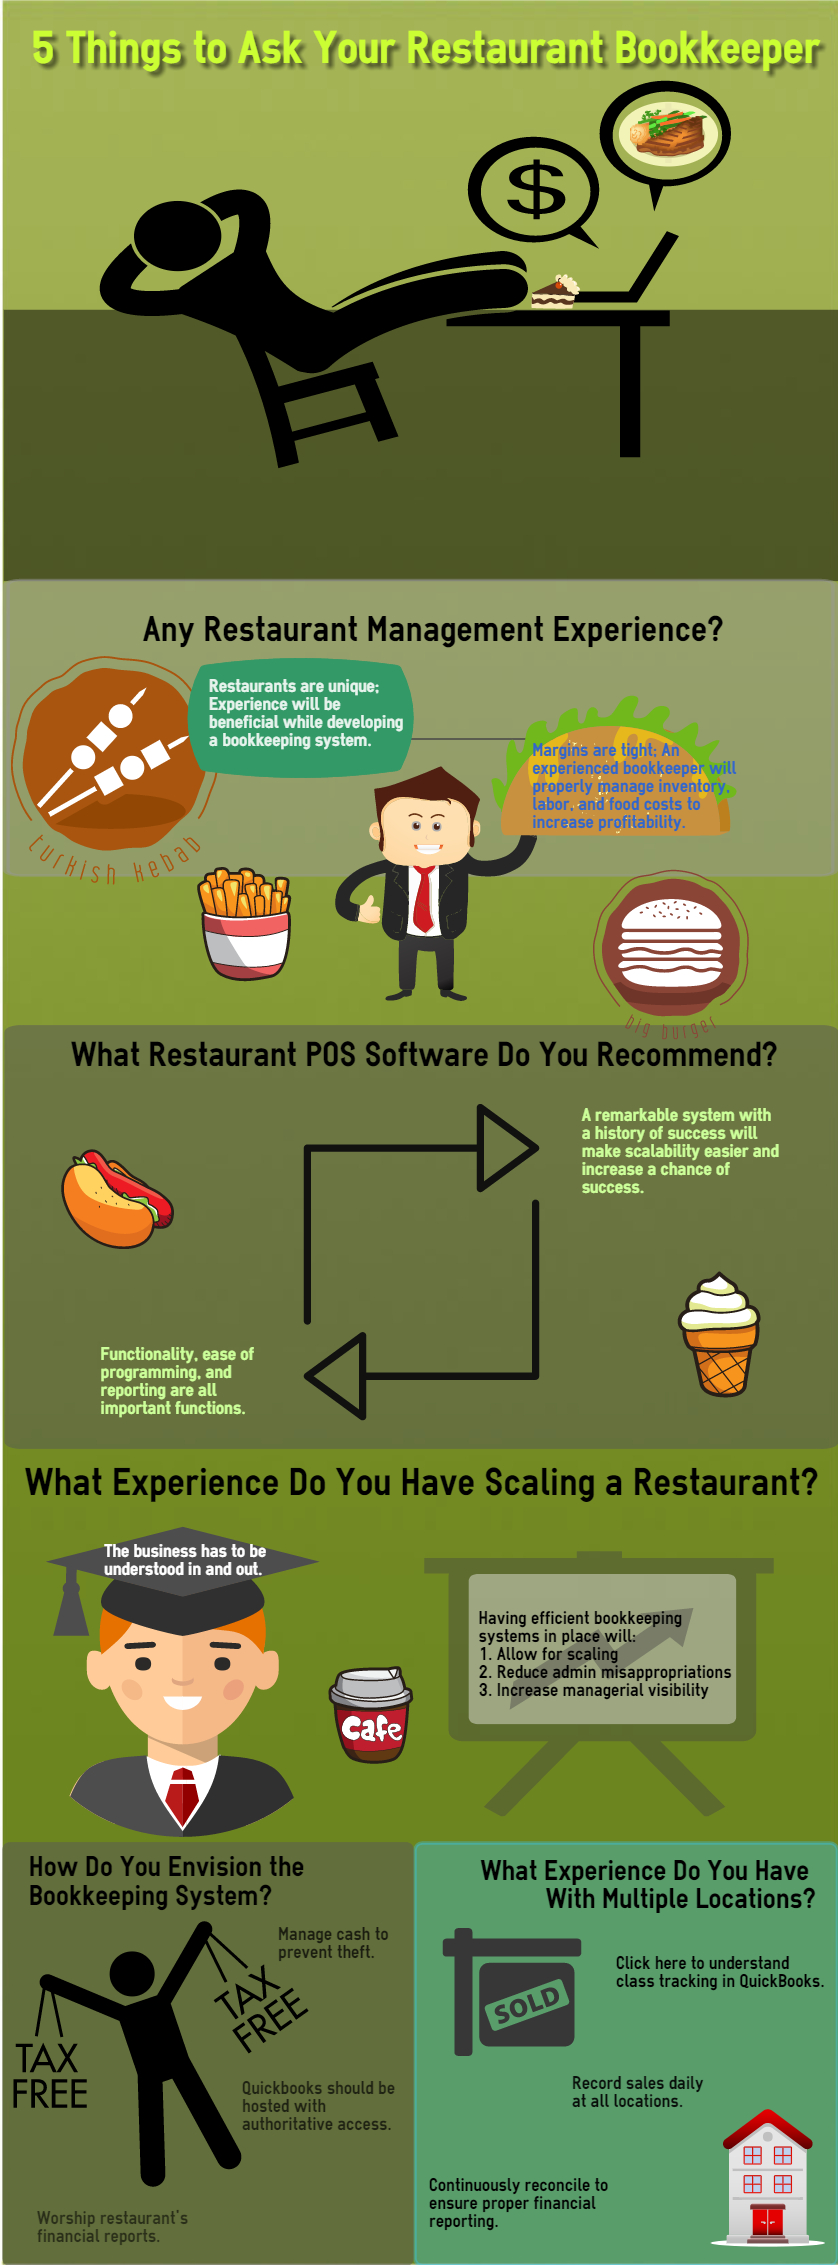 [Infographic] 5 Things to Ask your Restaurant Bookkeeper